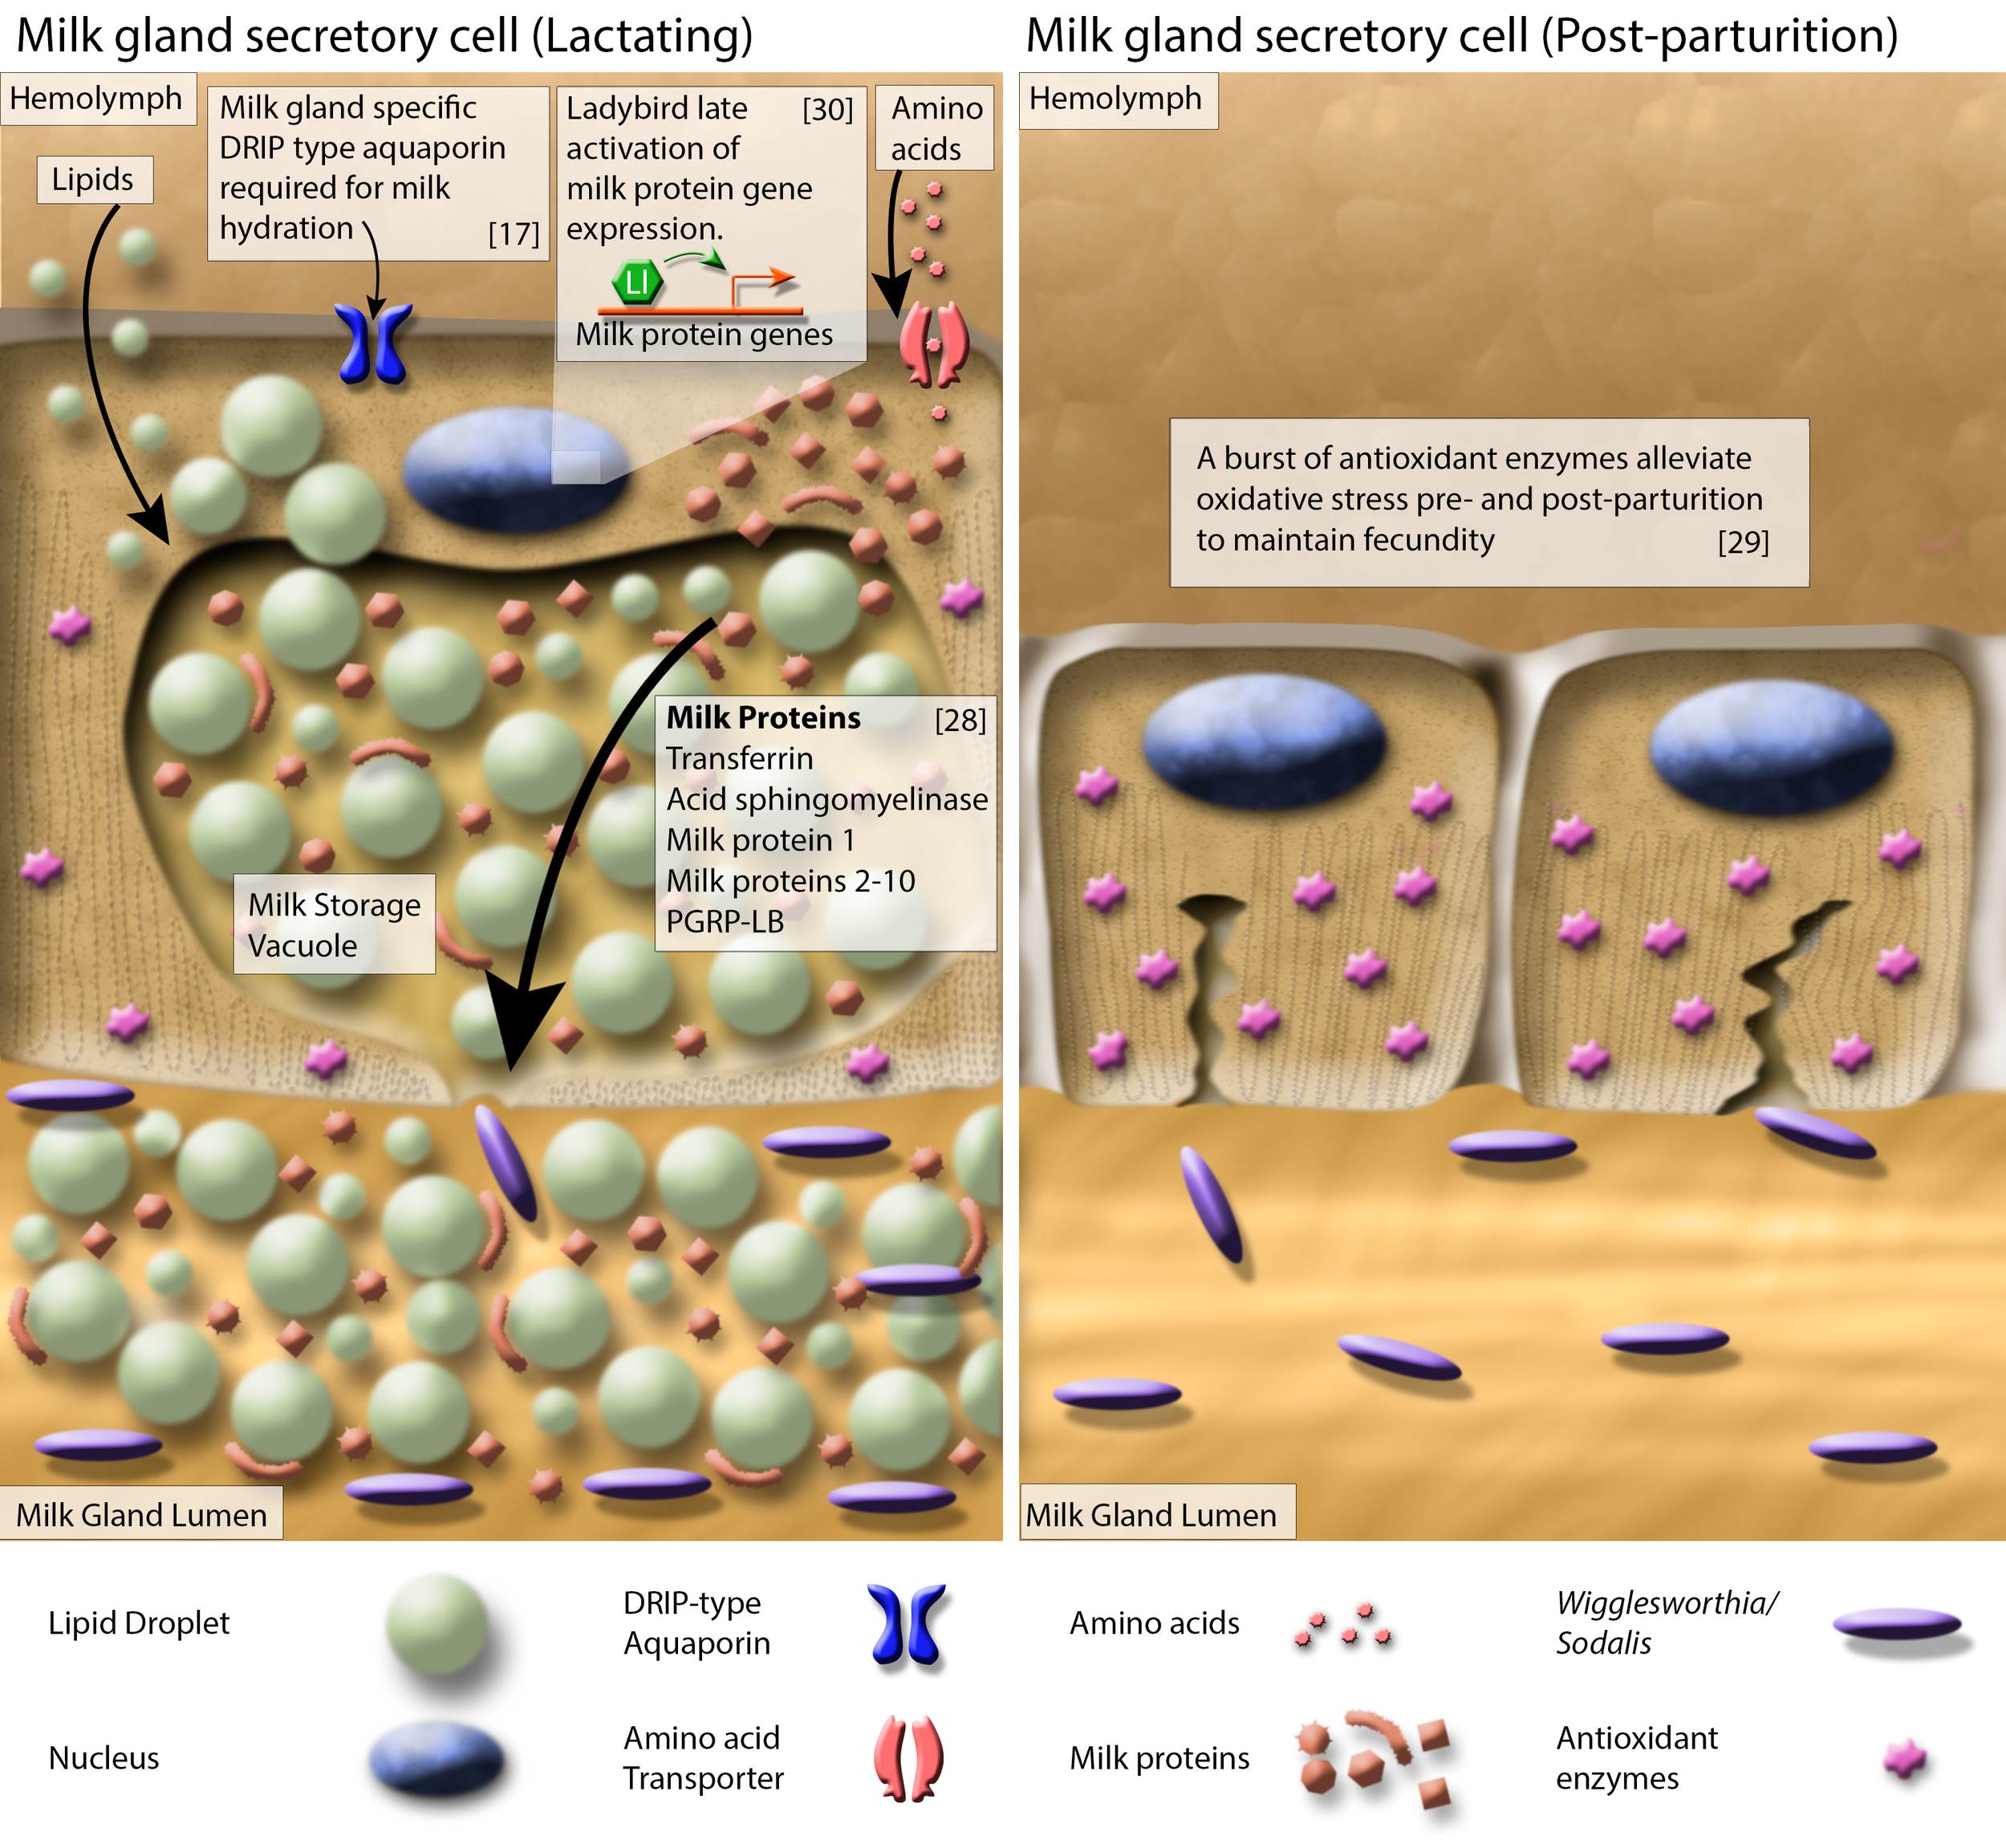 Diagrammatic presentation of milk gland secretory cell physiology and milk production during lactation and after parturition